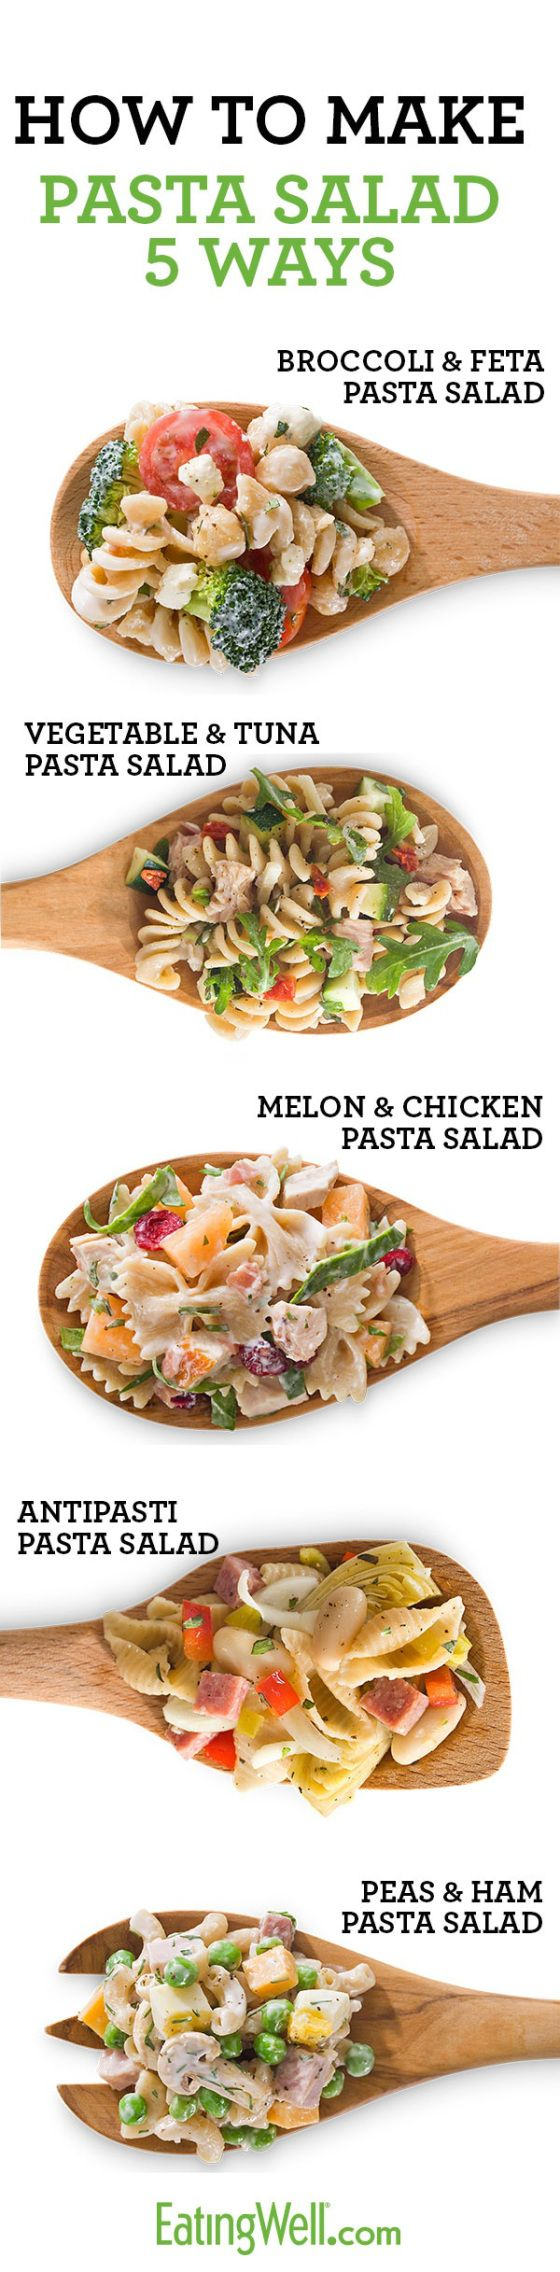 Healthy Pasta Salad Recipes